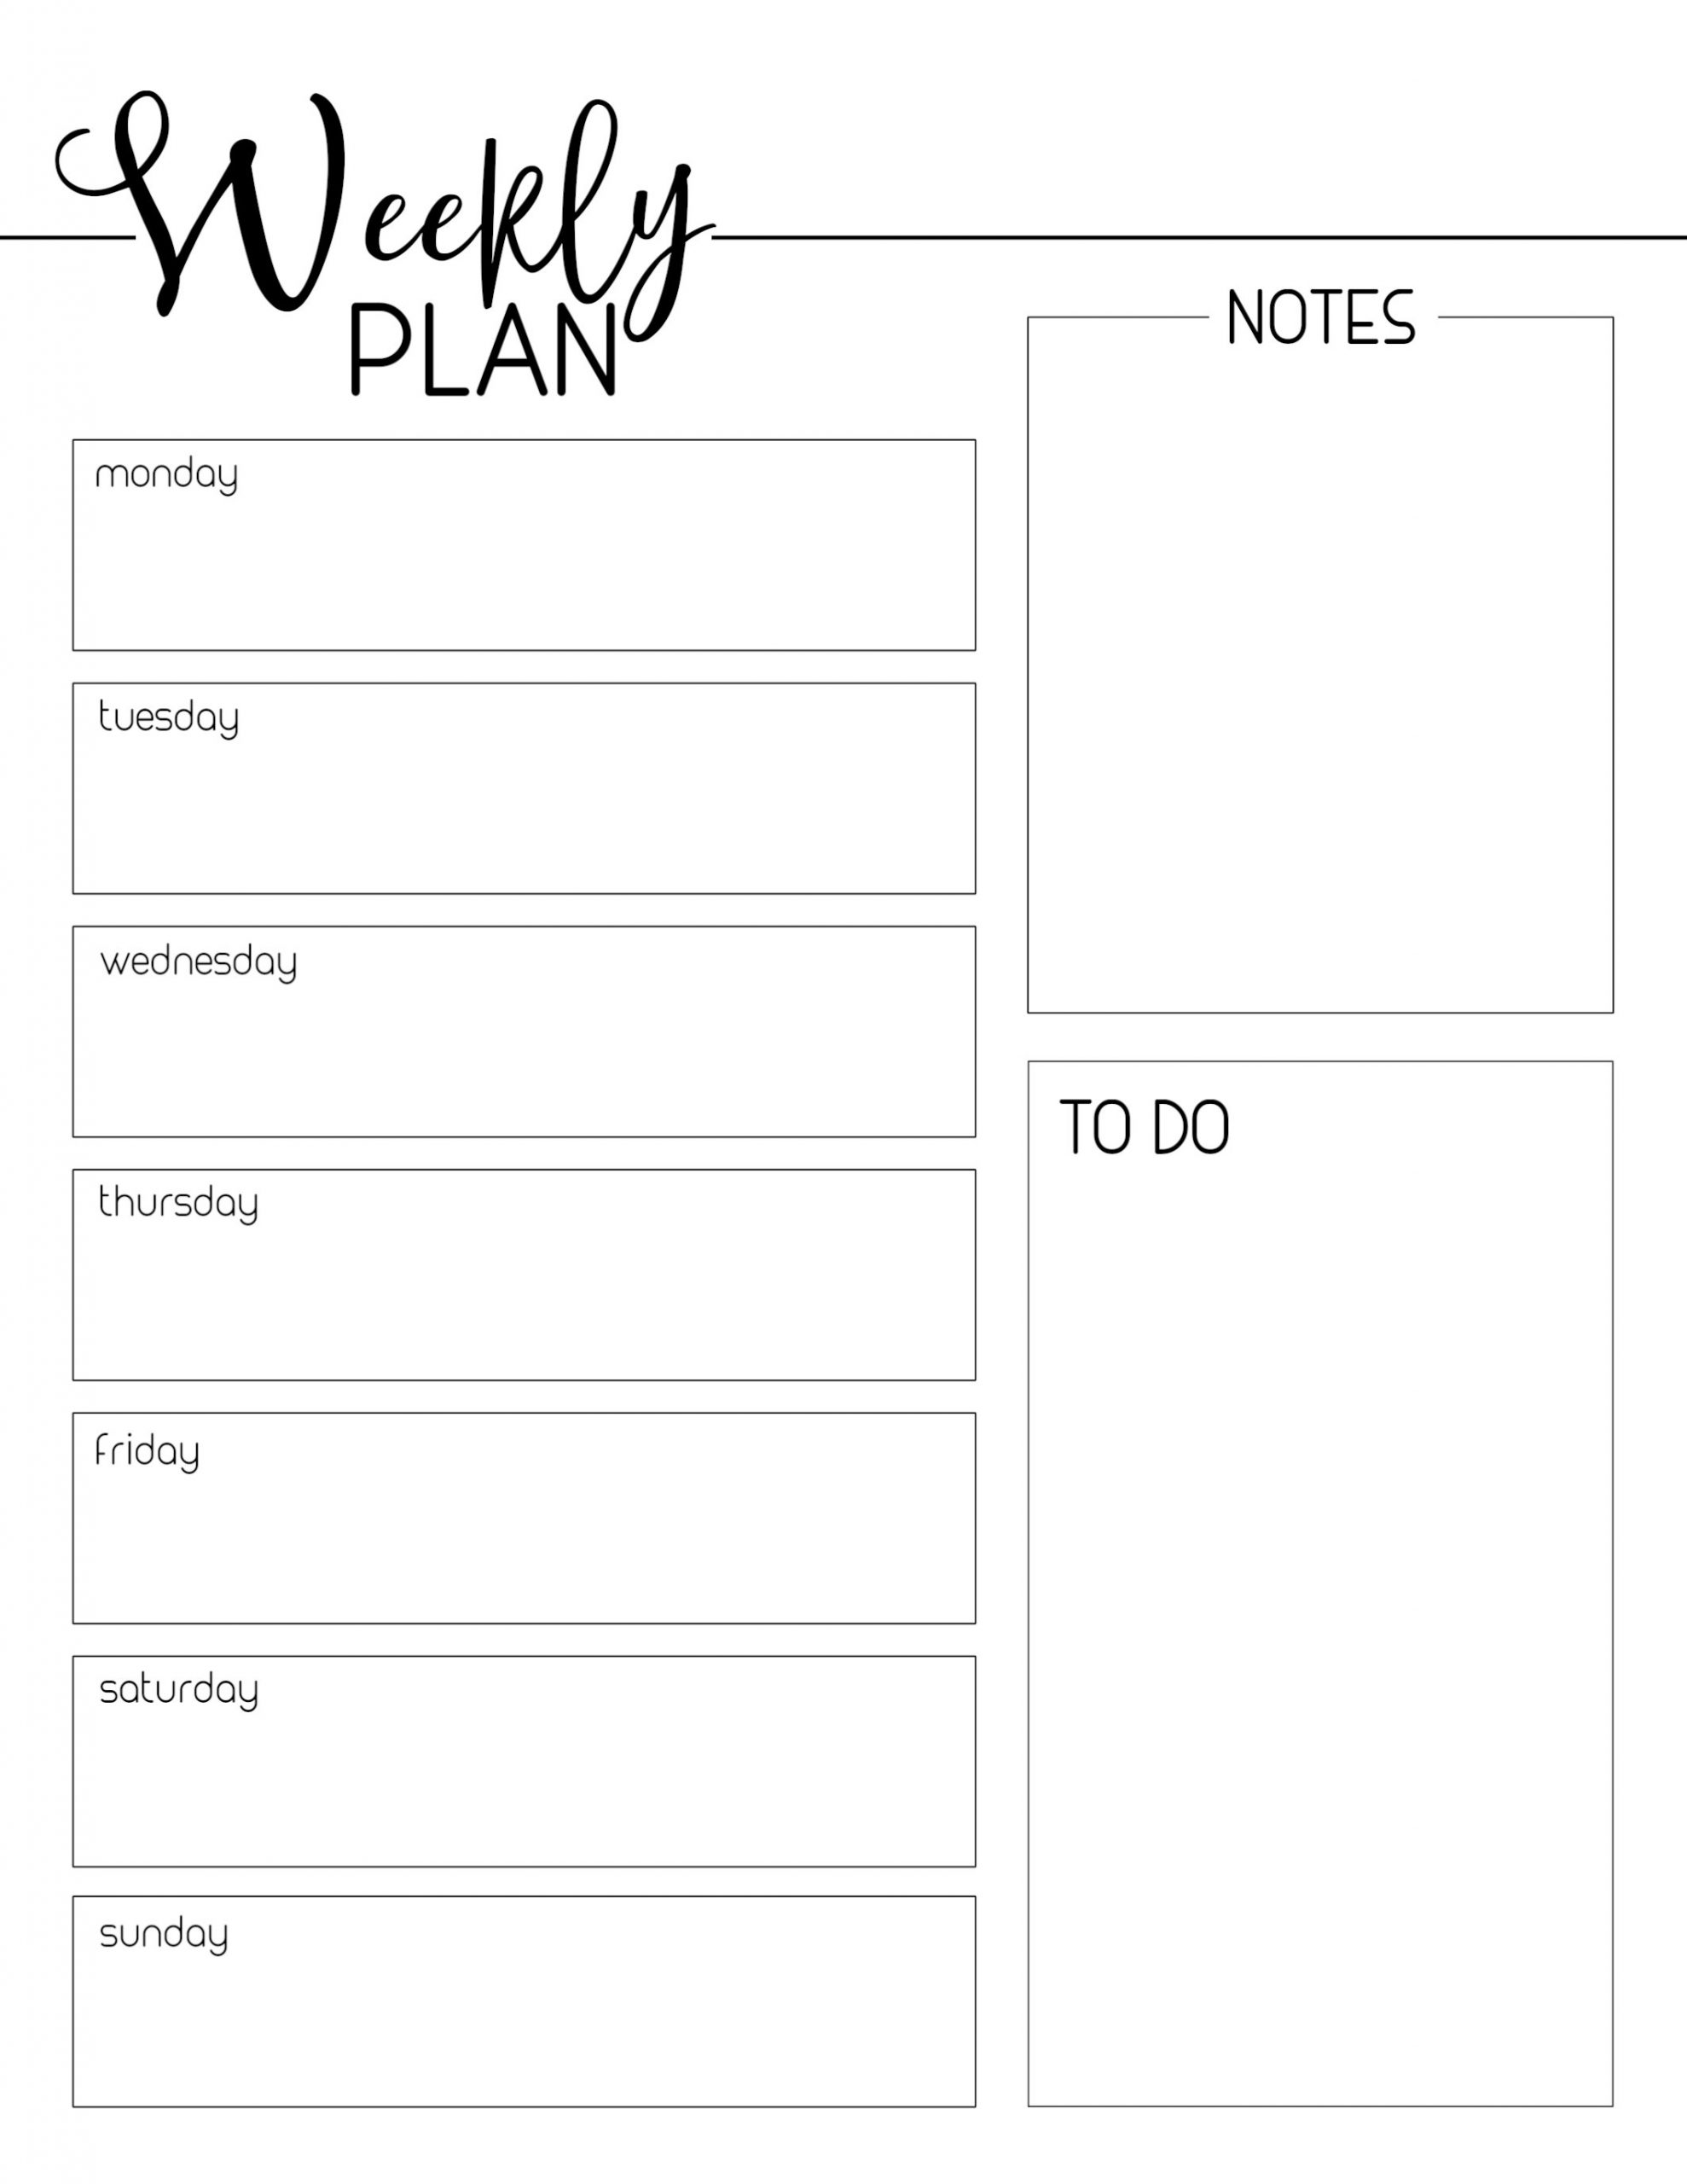 Free Printable Weekly Planner 2020 In Pdf, Word & Excel Week Day Printable Calander Free